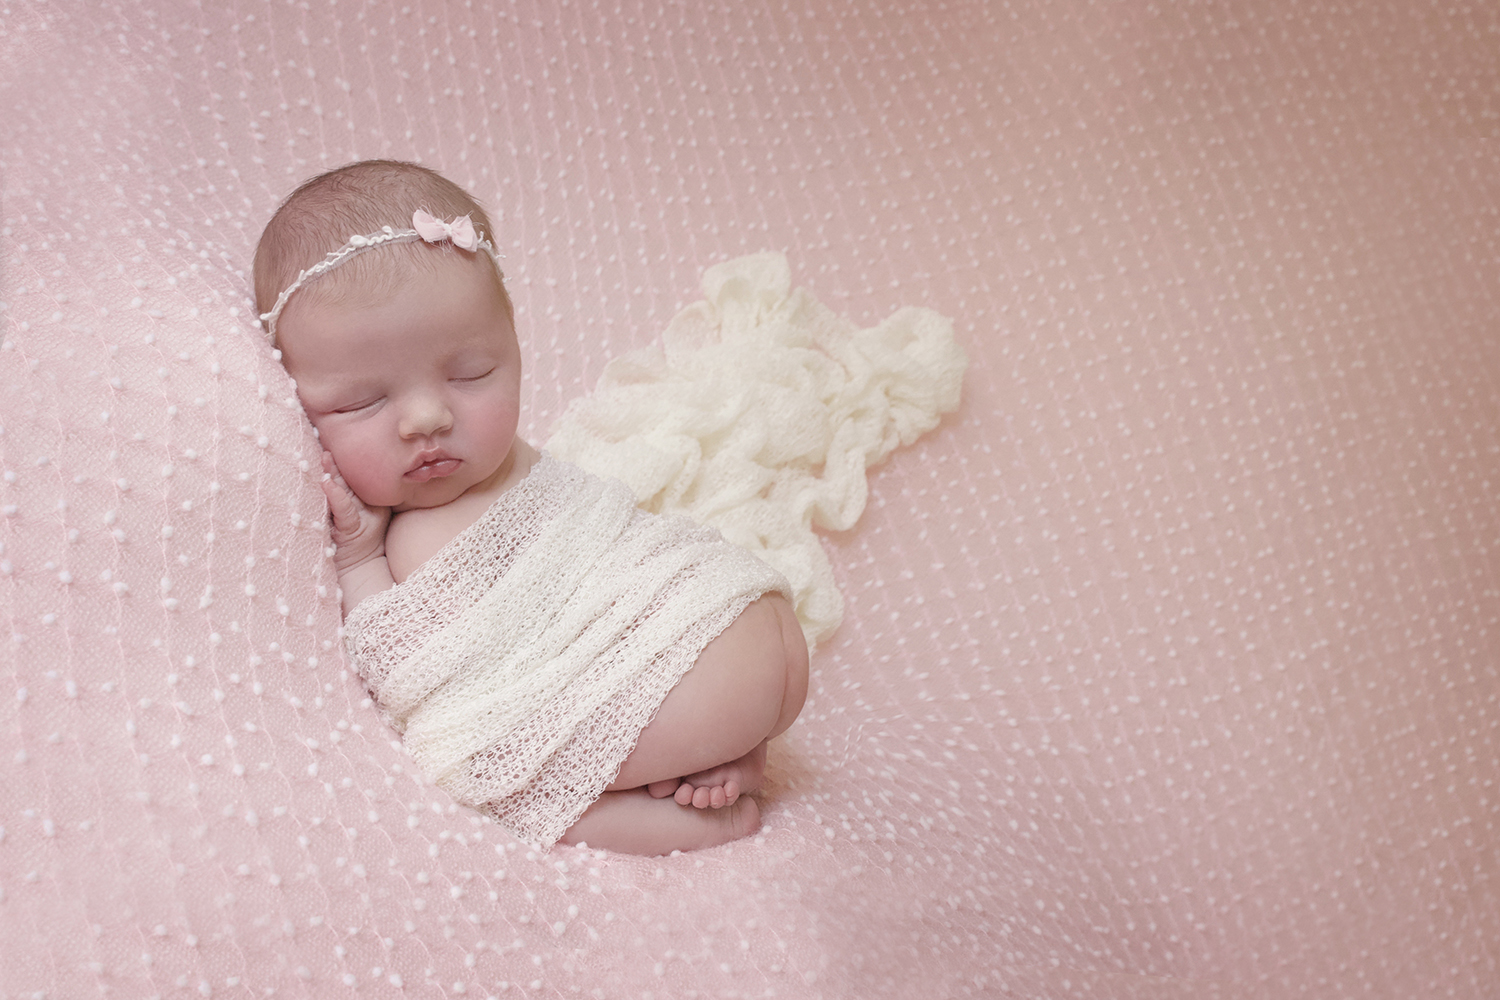 Newborn baby girl sleeping on pink spotted blanket with pink bow and white wrap being supported by female photographer wearing black tshirt and leggings